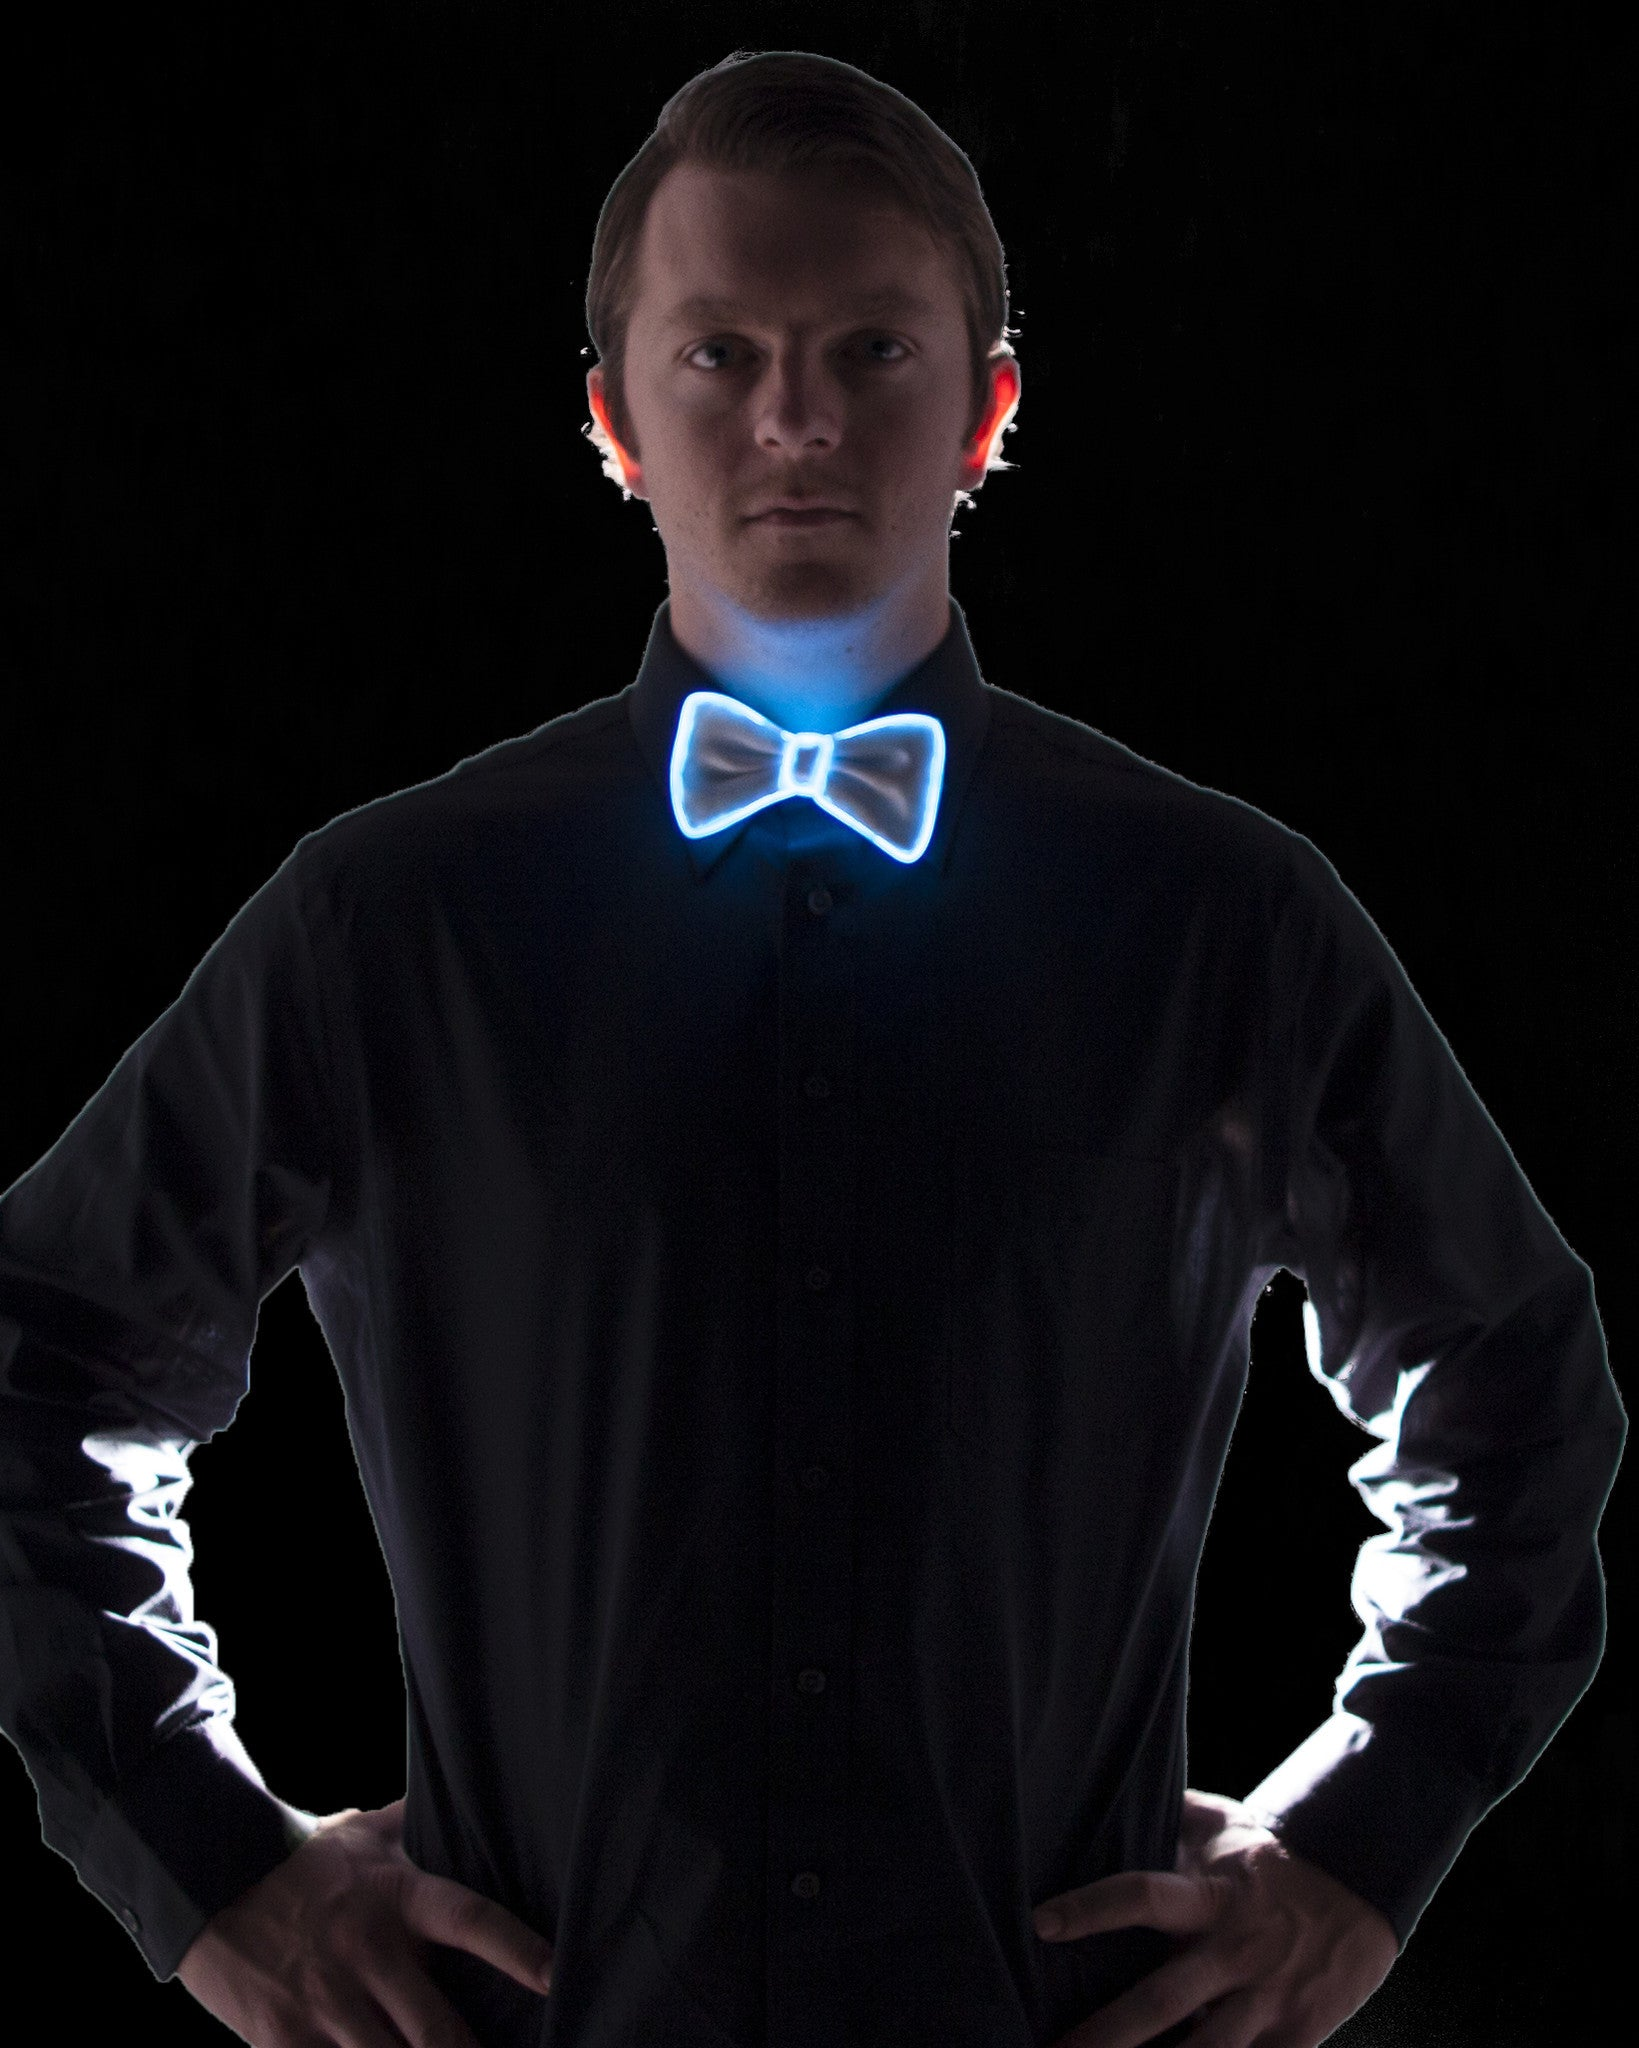 White Light Up Bow Tie - Electric Styles | World's Number 1 Light Up Shoe Store - {product_type}} - Blue - 4